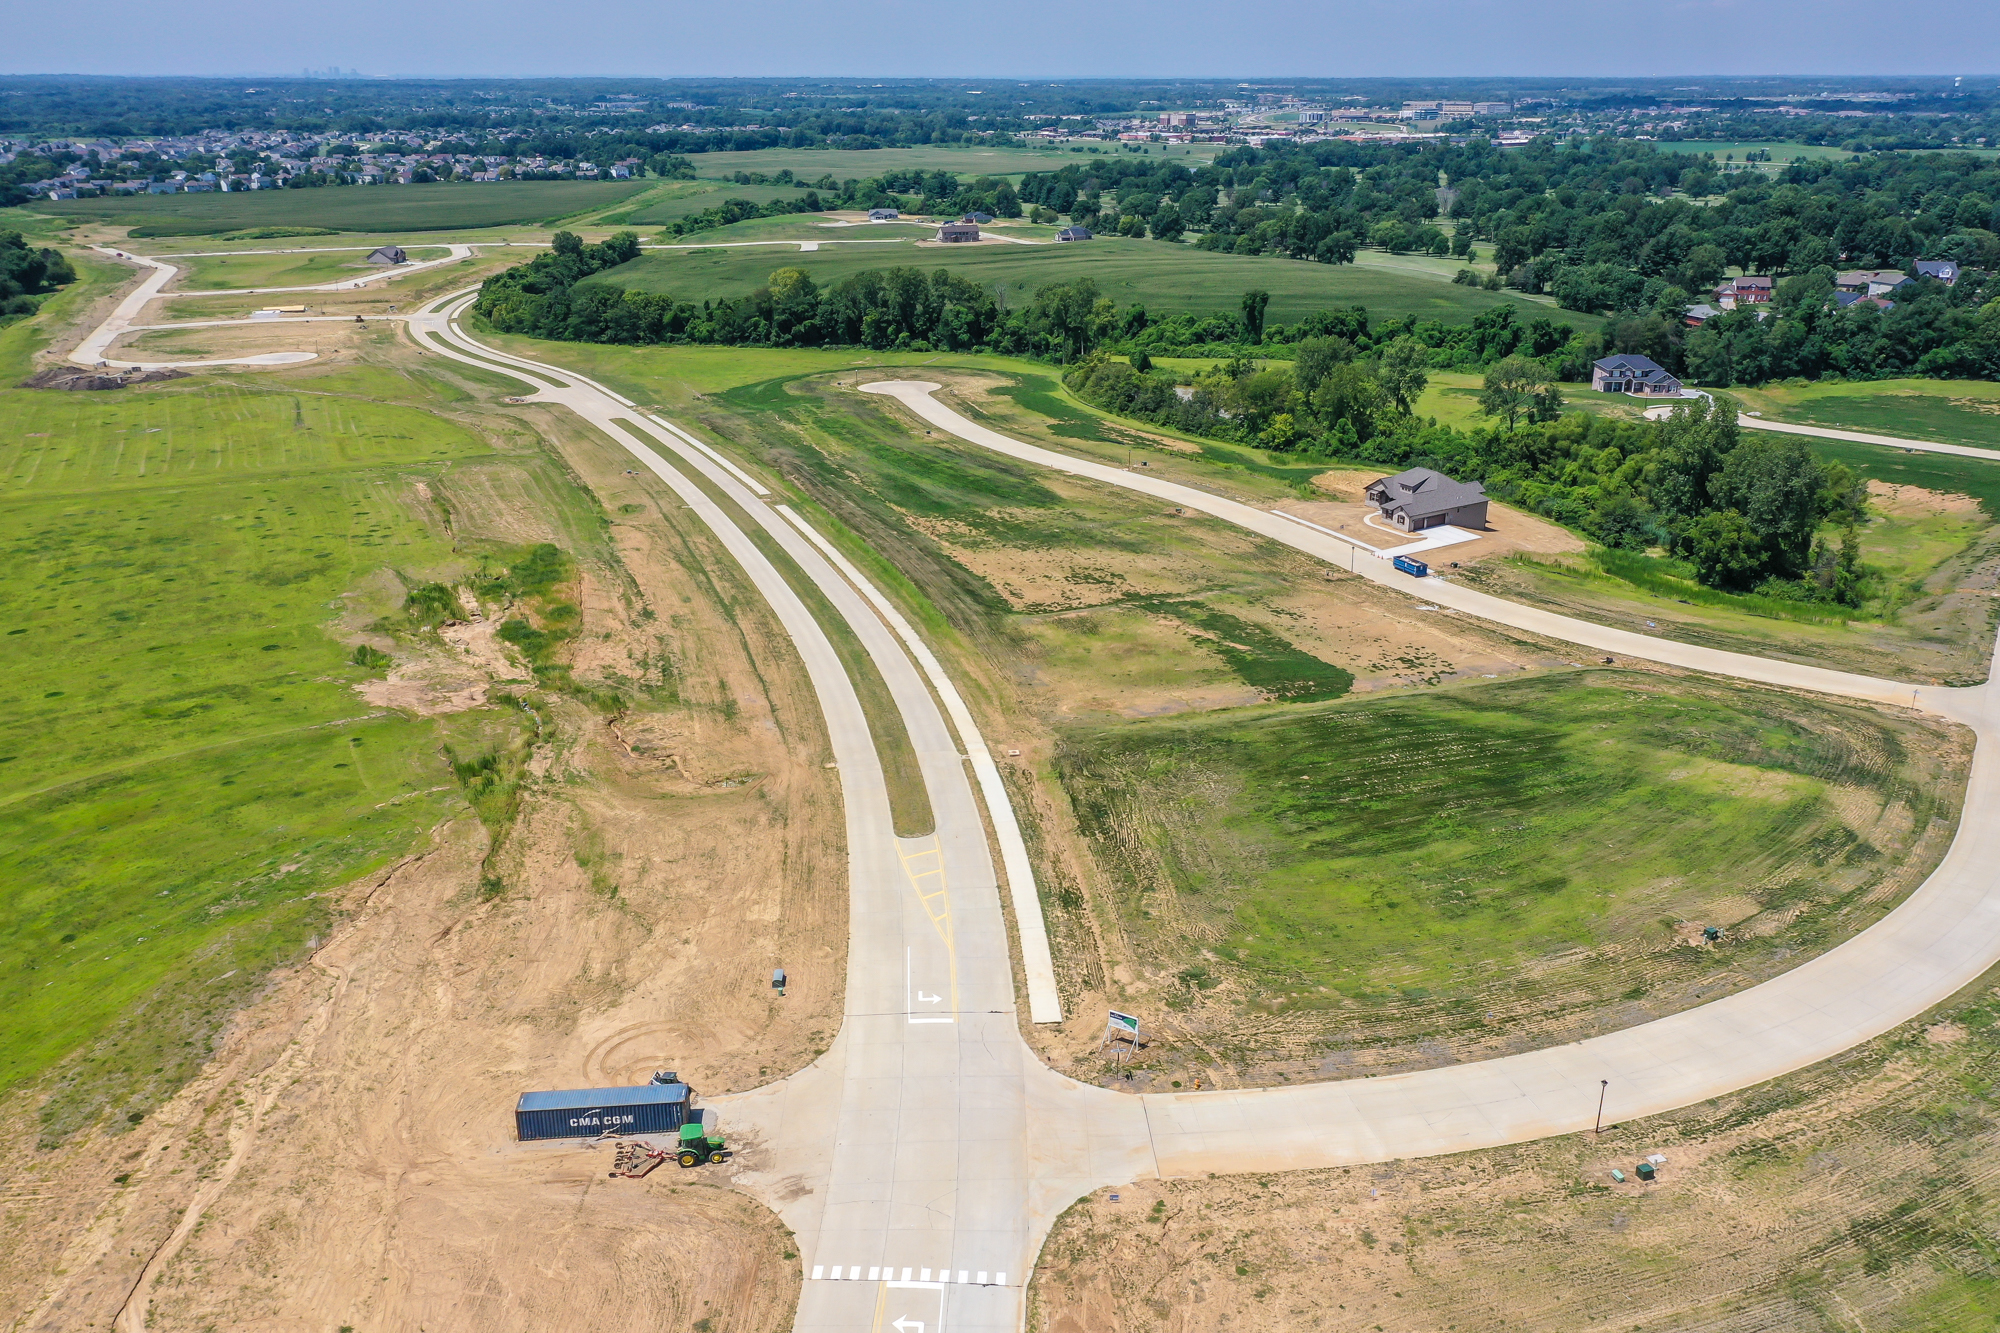 New_Construction_Homes_For_Sale_Shiloh_Illinois_Near_Scott_AFB-9.jpg